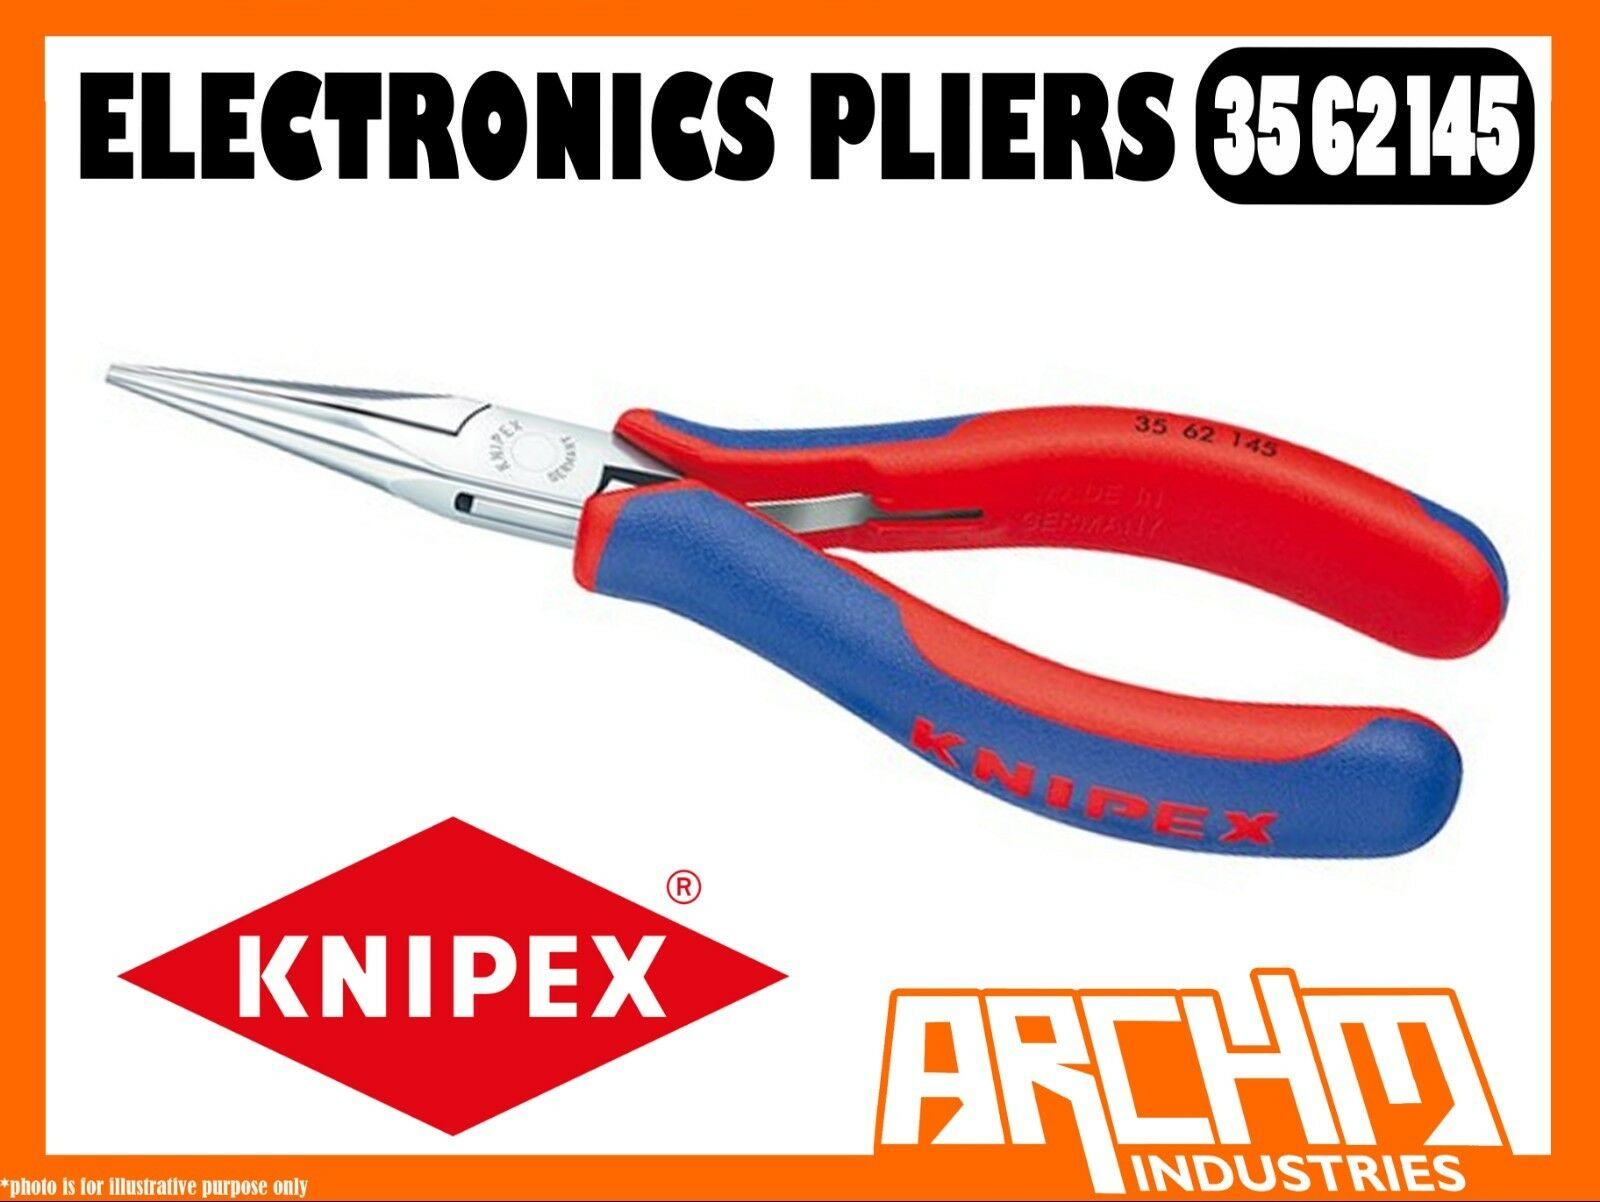 KNIPEX 3562145 - ELECTRONICS PLIERS - 145MM - BOX JOINT HALF ROUND JAWS GRIPPING